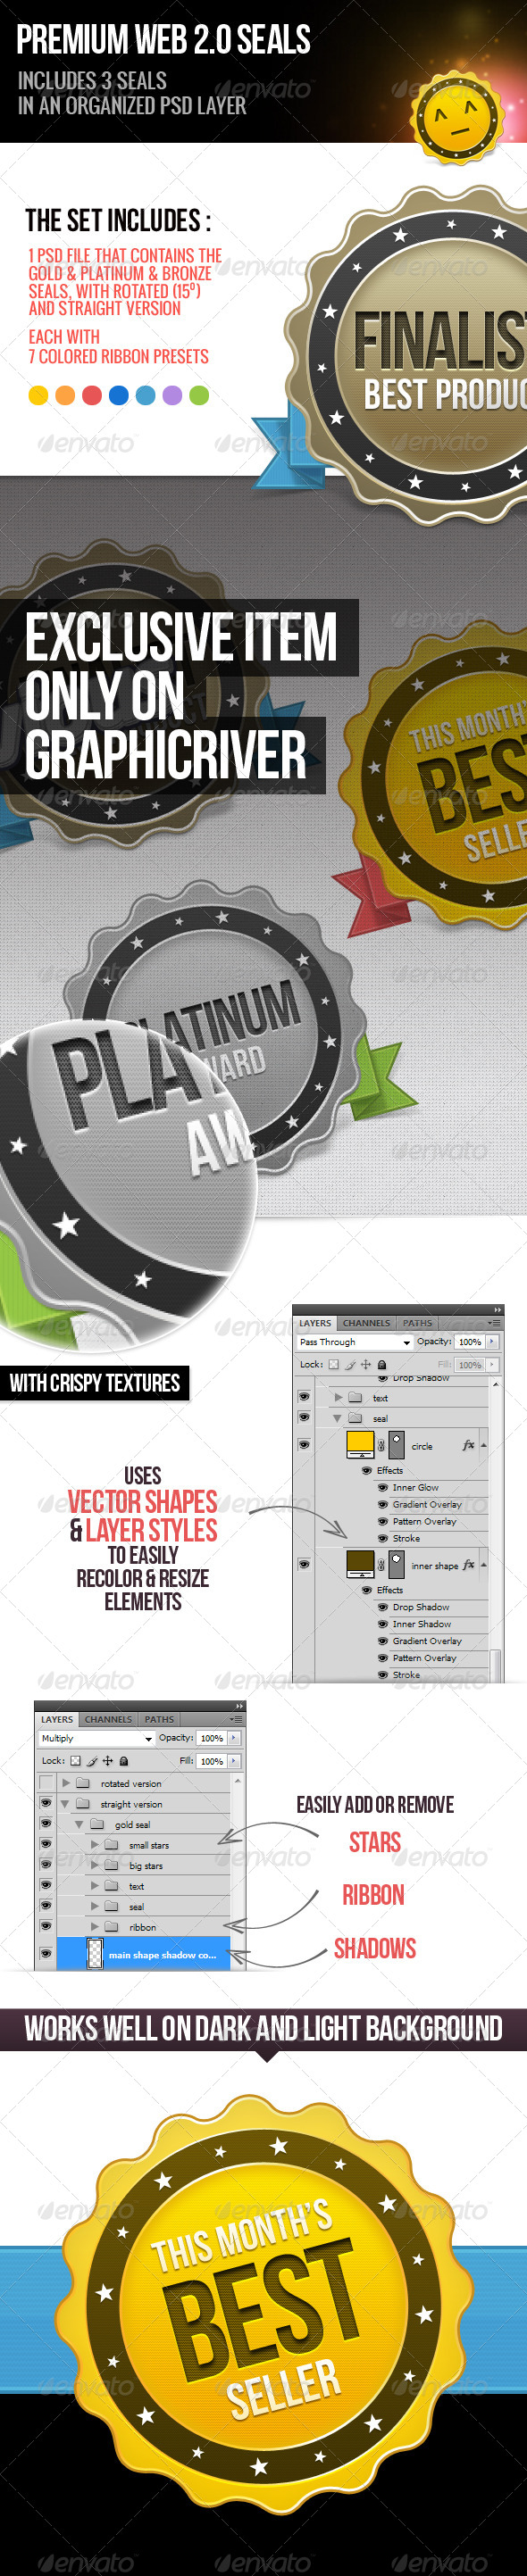 GraphicRiver Premium Web 2.0 Seals 3974657